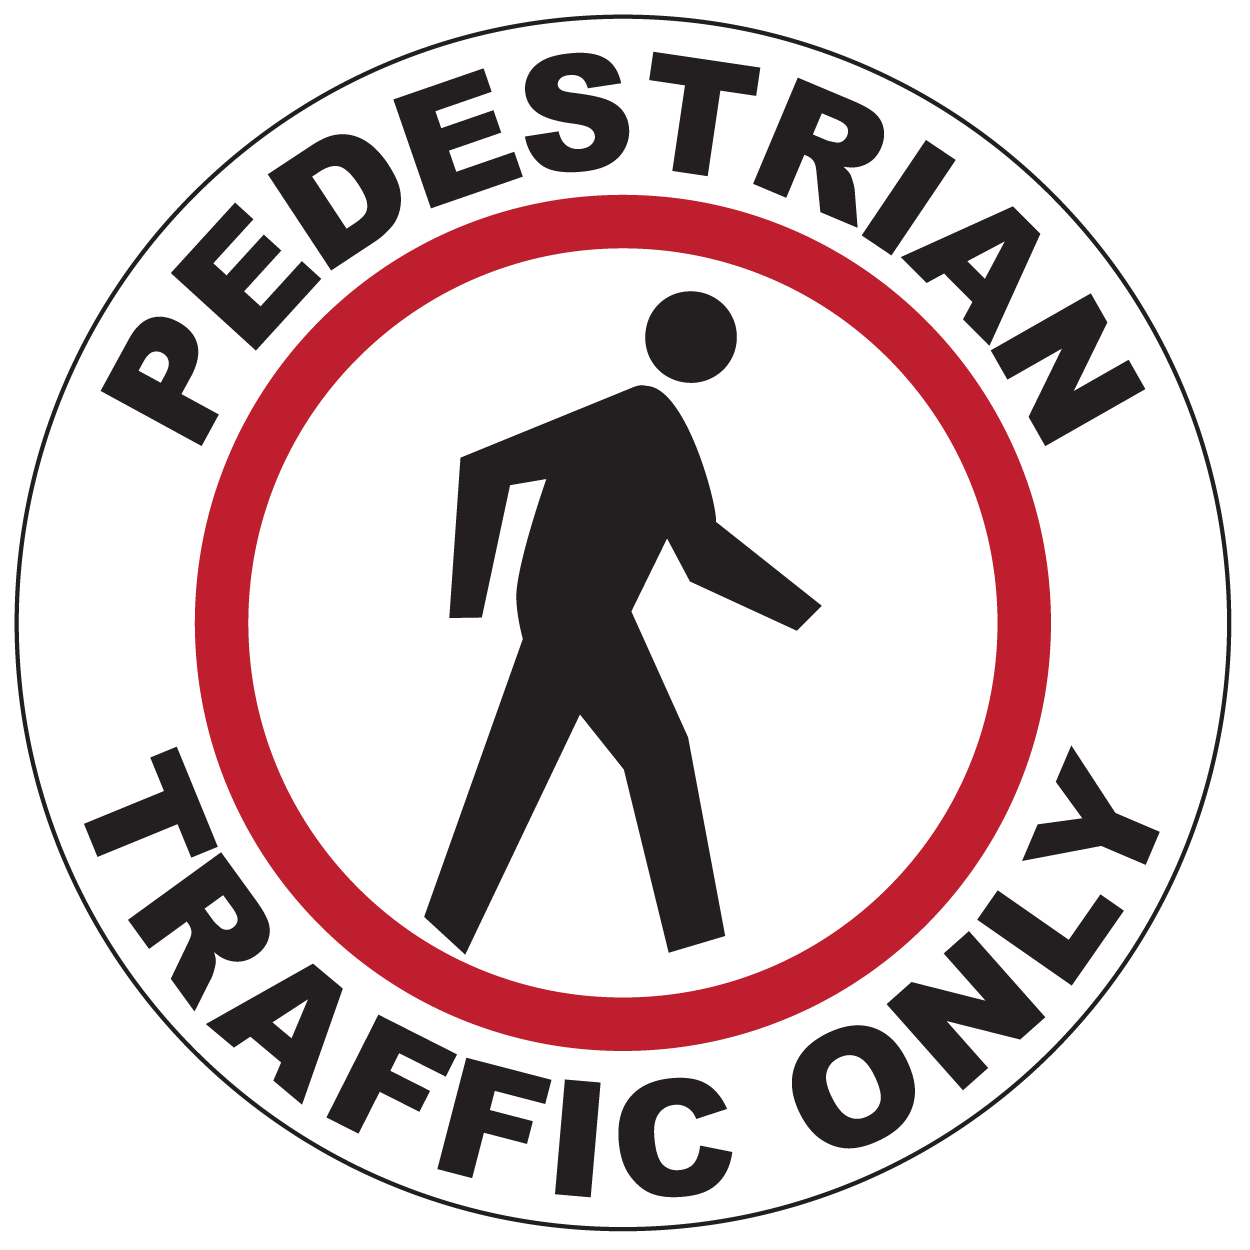 Pedestrian Traffic Only - Graphical Warehouse